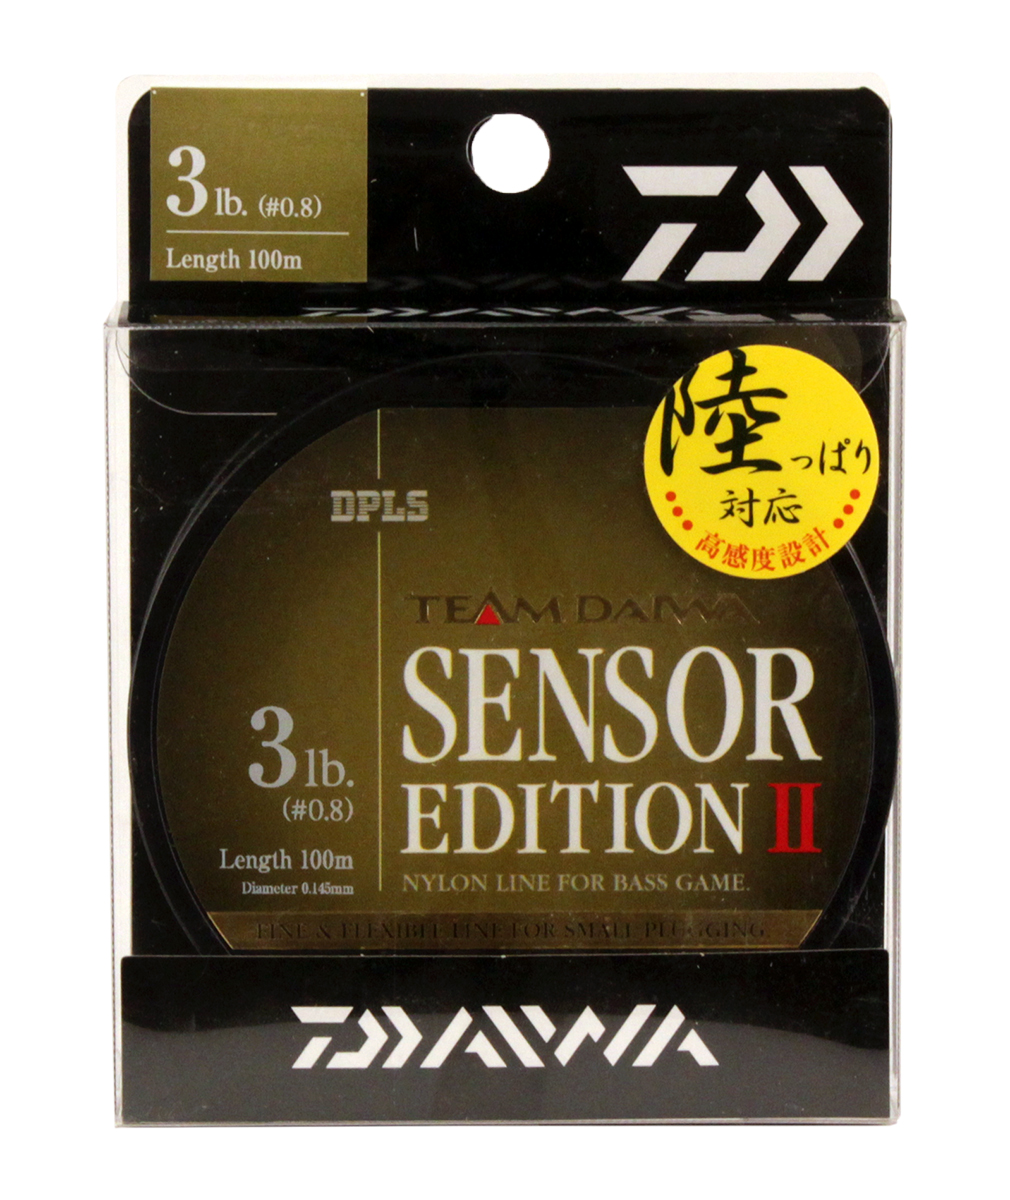 Леска Daiwa TD Sensor Edition II, цвет: оливковый, 3 lb, 100 м td tad k620a 220v ceiling mounted infrared sensor switch motion light sensor